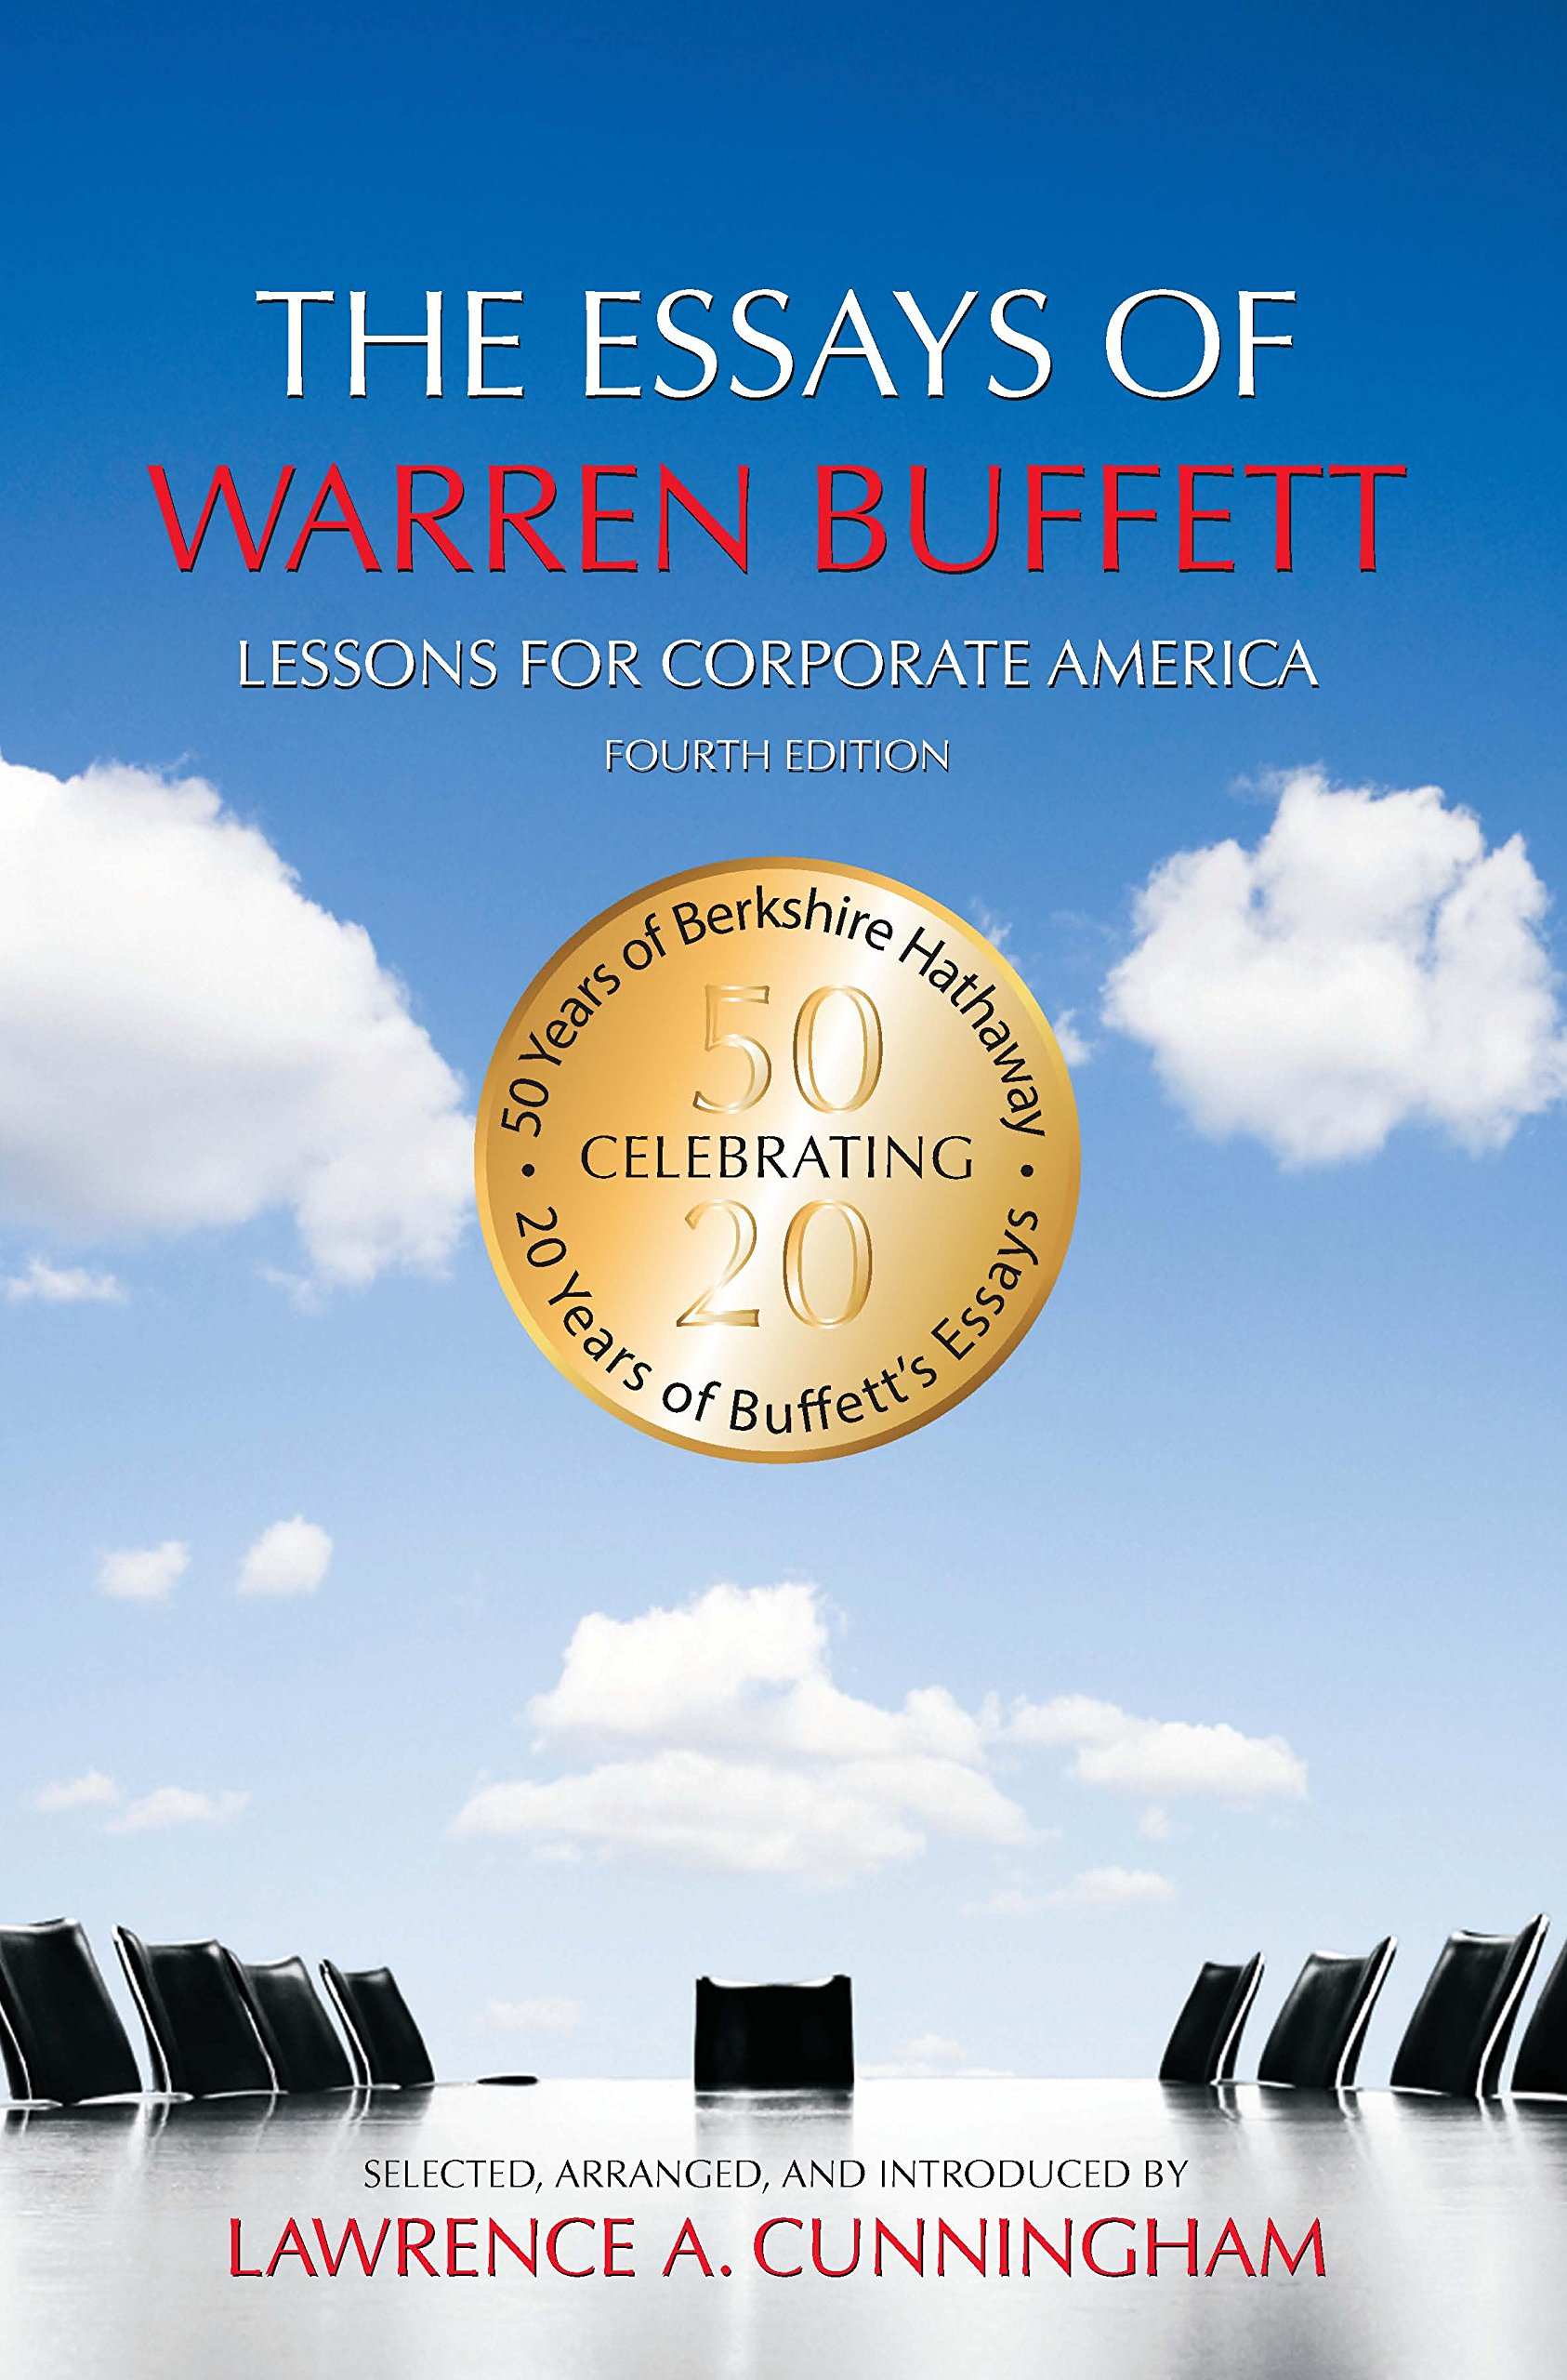 The Essays of Warren Buffett book front cover